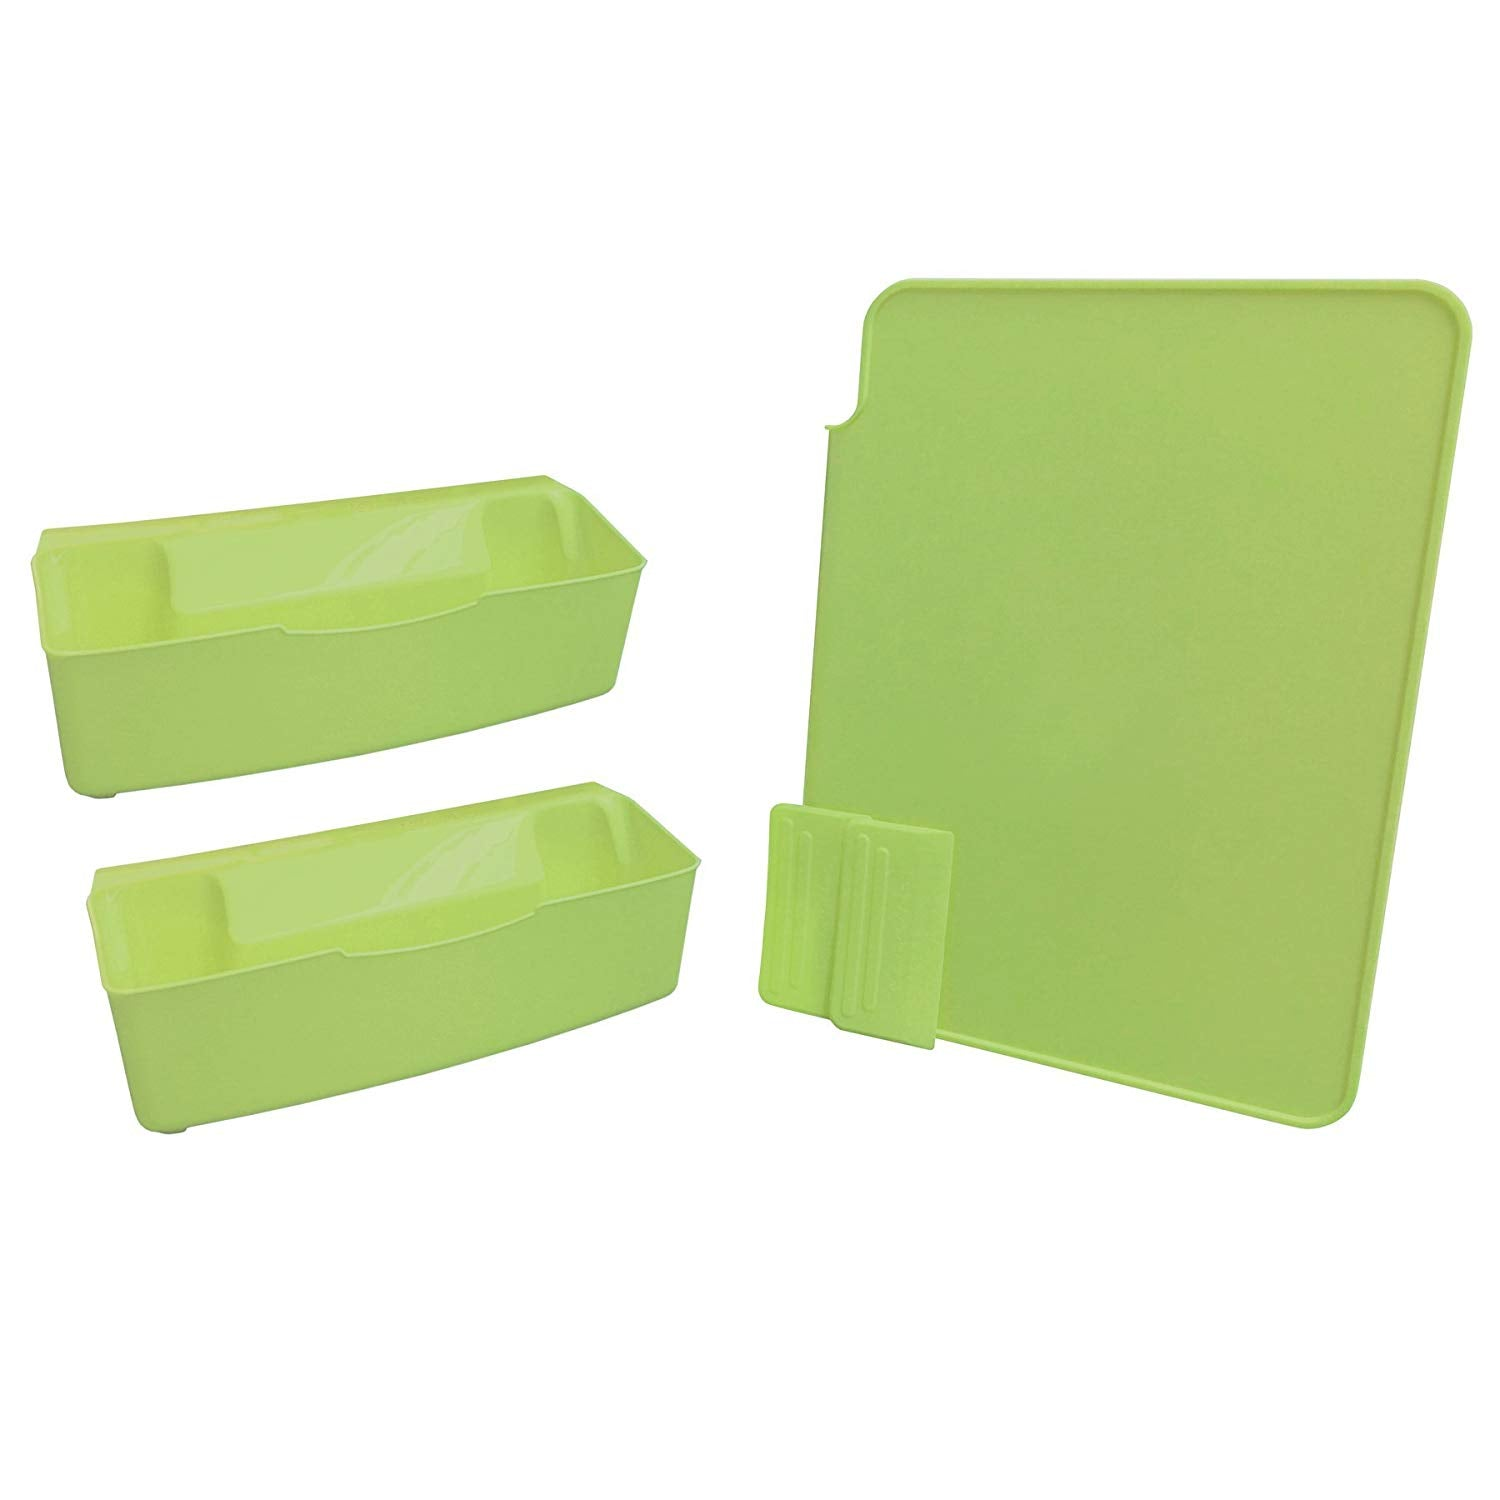 Performance Cutting Board Counter Catcher Dishwasher Safe Home Kitchen Tools Set, Kiwi